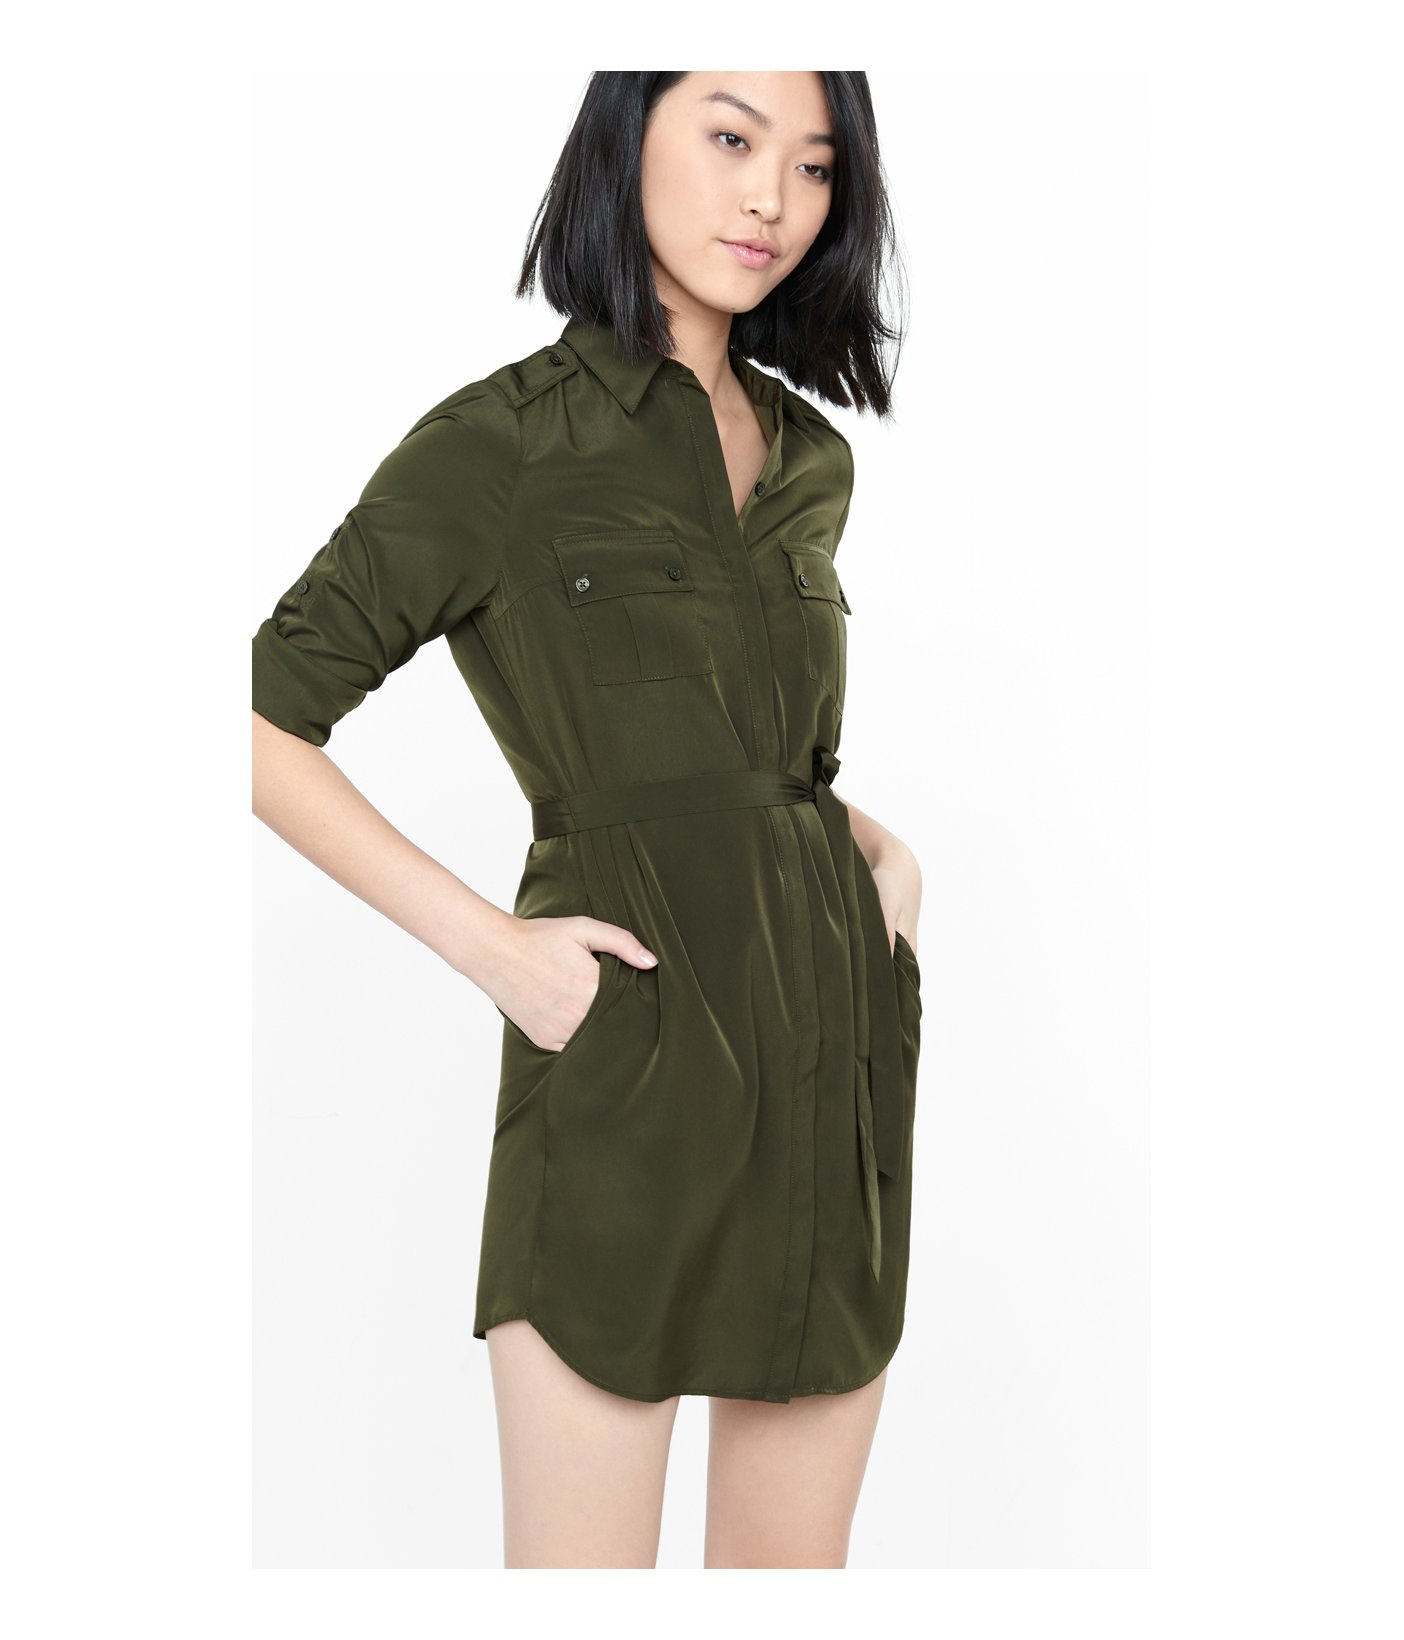 e155778cb7 Lyst - Express Olive Military Shirt Dress in Green